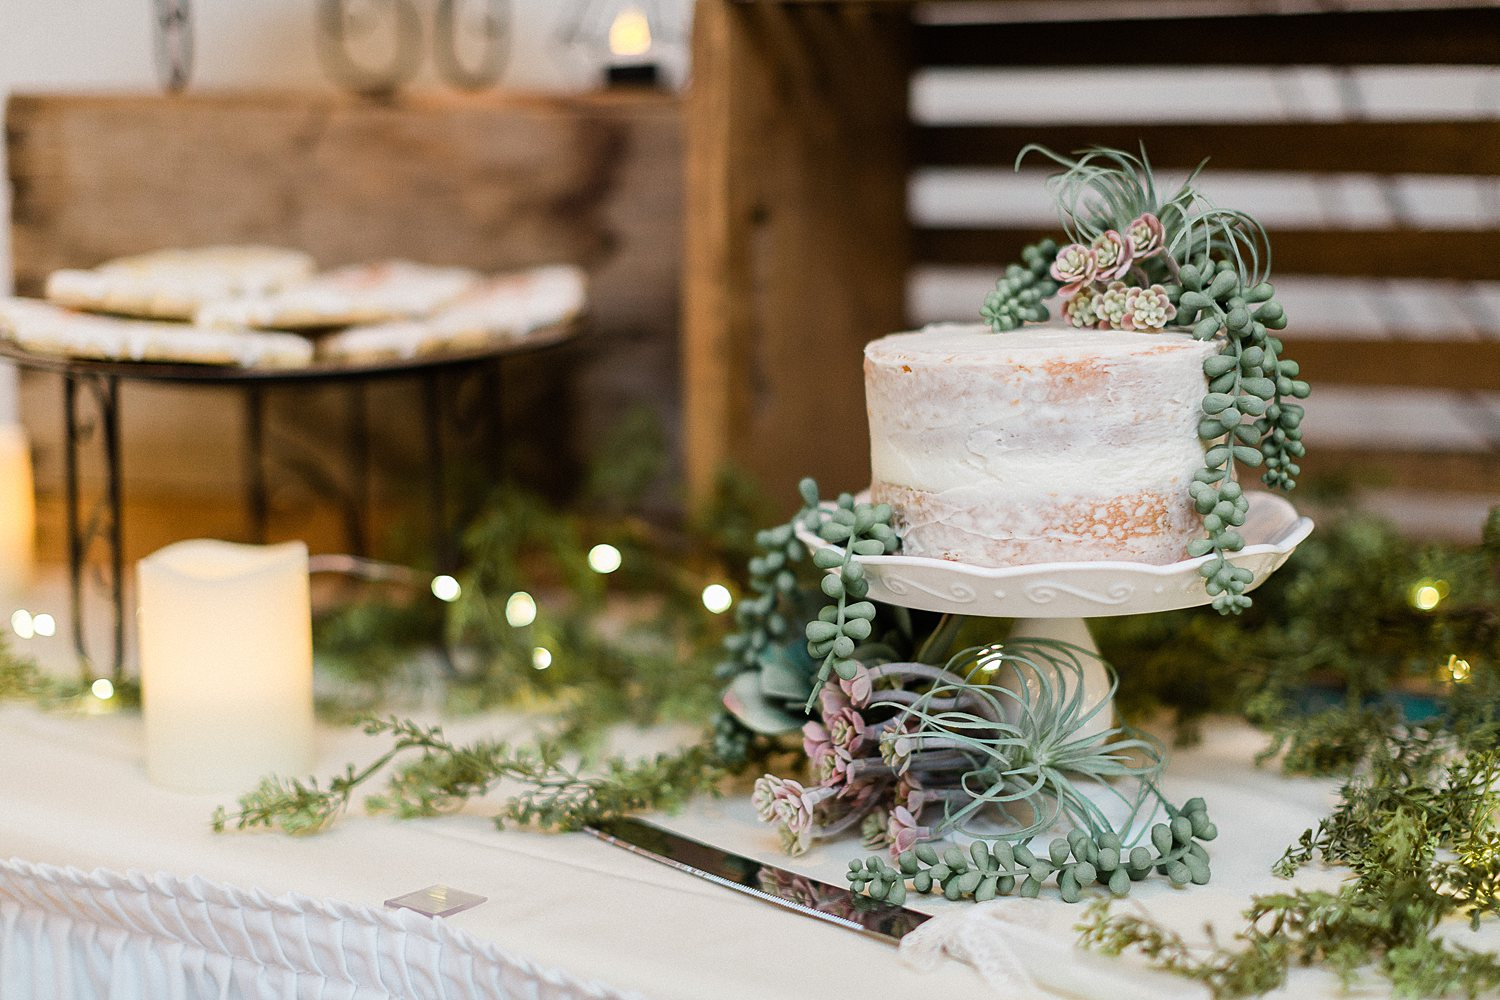 North_Central_Wisconsin_Event_Wedding_Venues_Fall_Weddings_The_Bailiwick_Venue_James-Stokes-Photography059.jpg